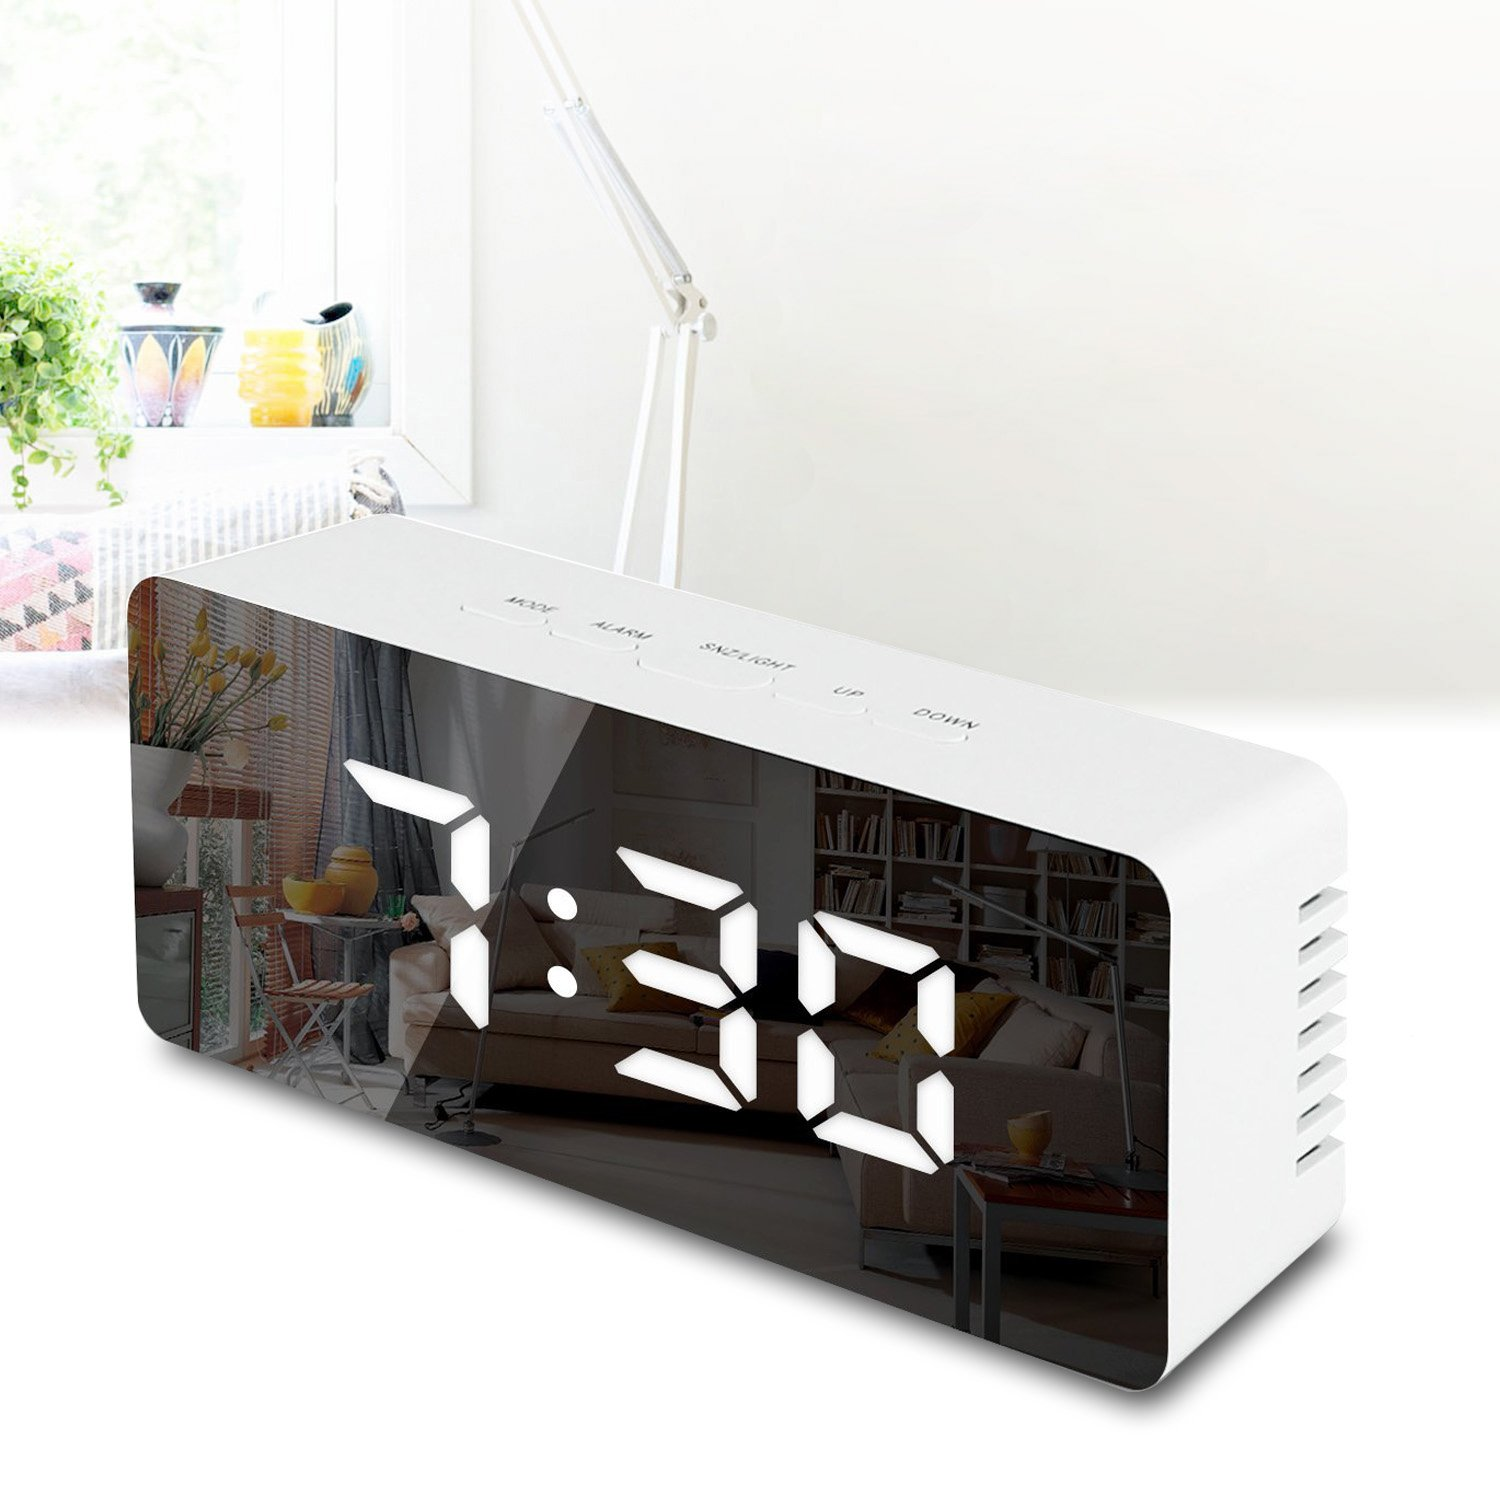 GO HAND Digital LED Alarm Clock, Mirror Alarm Clock Large LED Display, with Sleep Time Dimming Function, Suitable for Bedroom, Office, Travel - Battery Powered and USB Powered (White Digital)